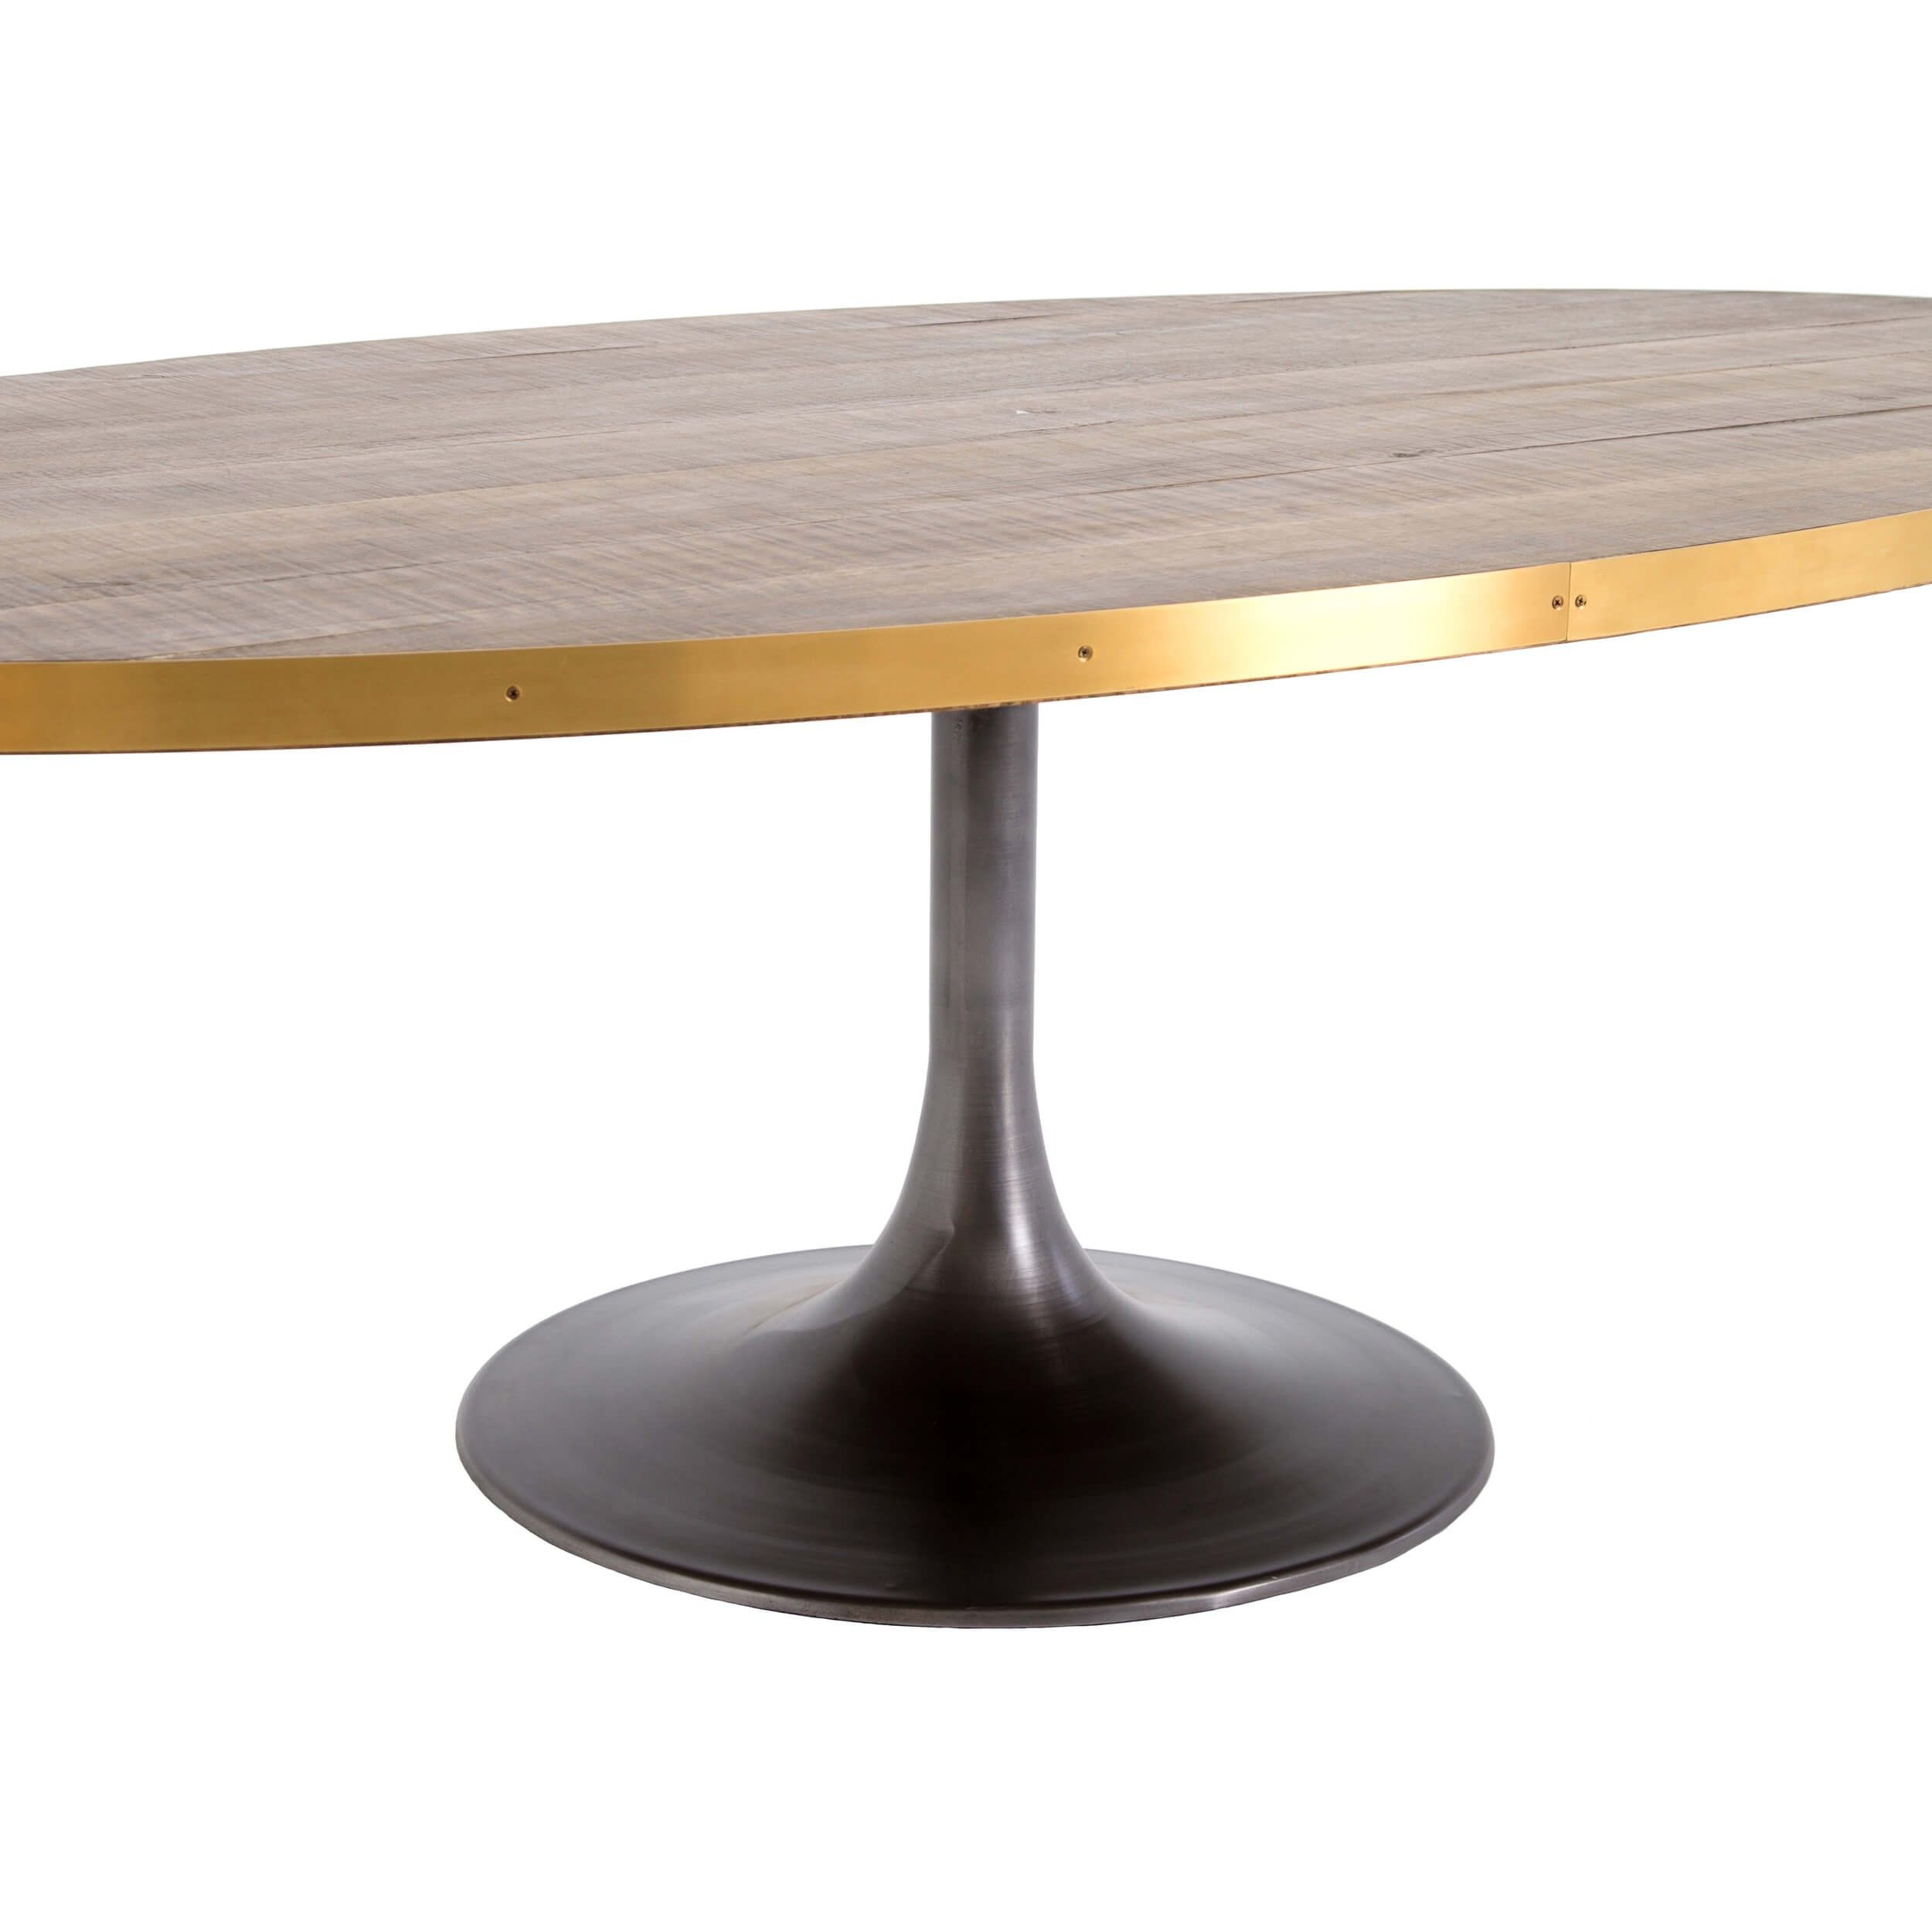 Evans Oval Dining Table Dining Table Oval Table Dining Dining